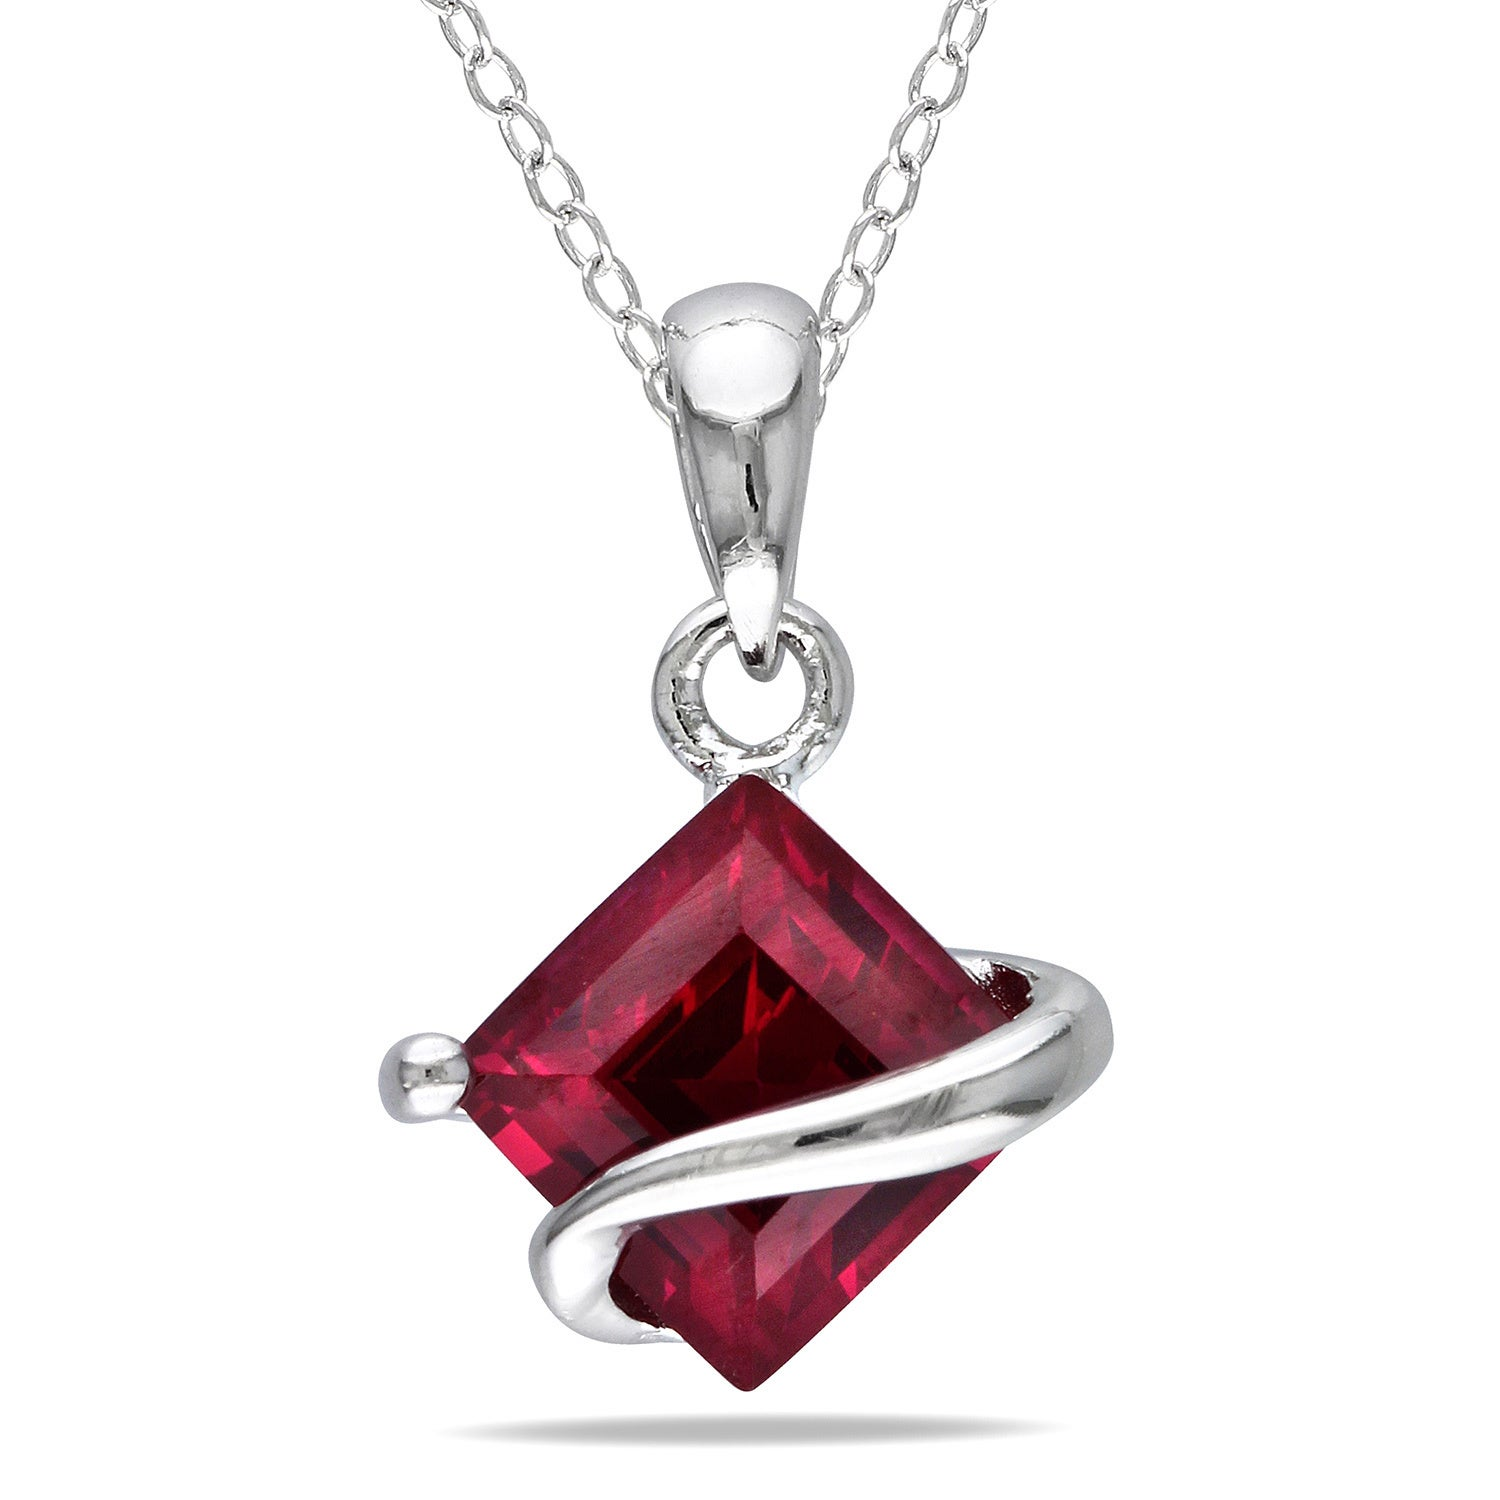 jewellery ruby etcetera magnificent by lot details hgk a necklace jewelry and diamond lotfinder